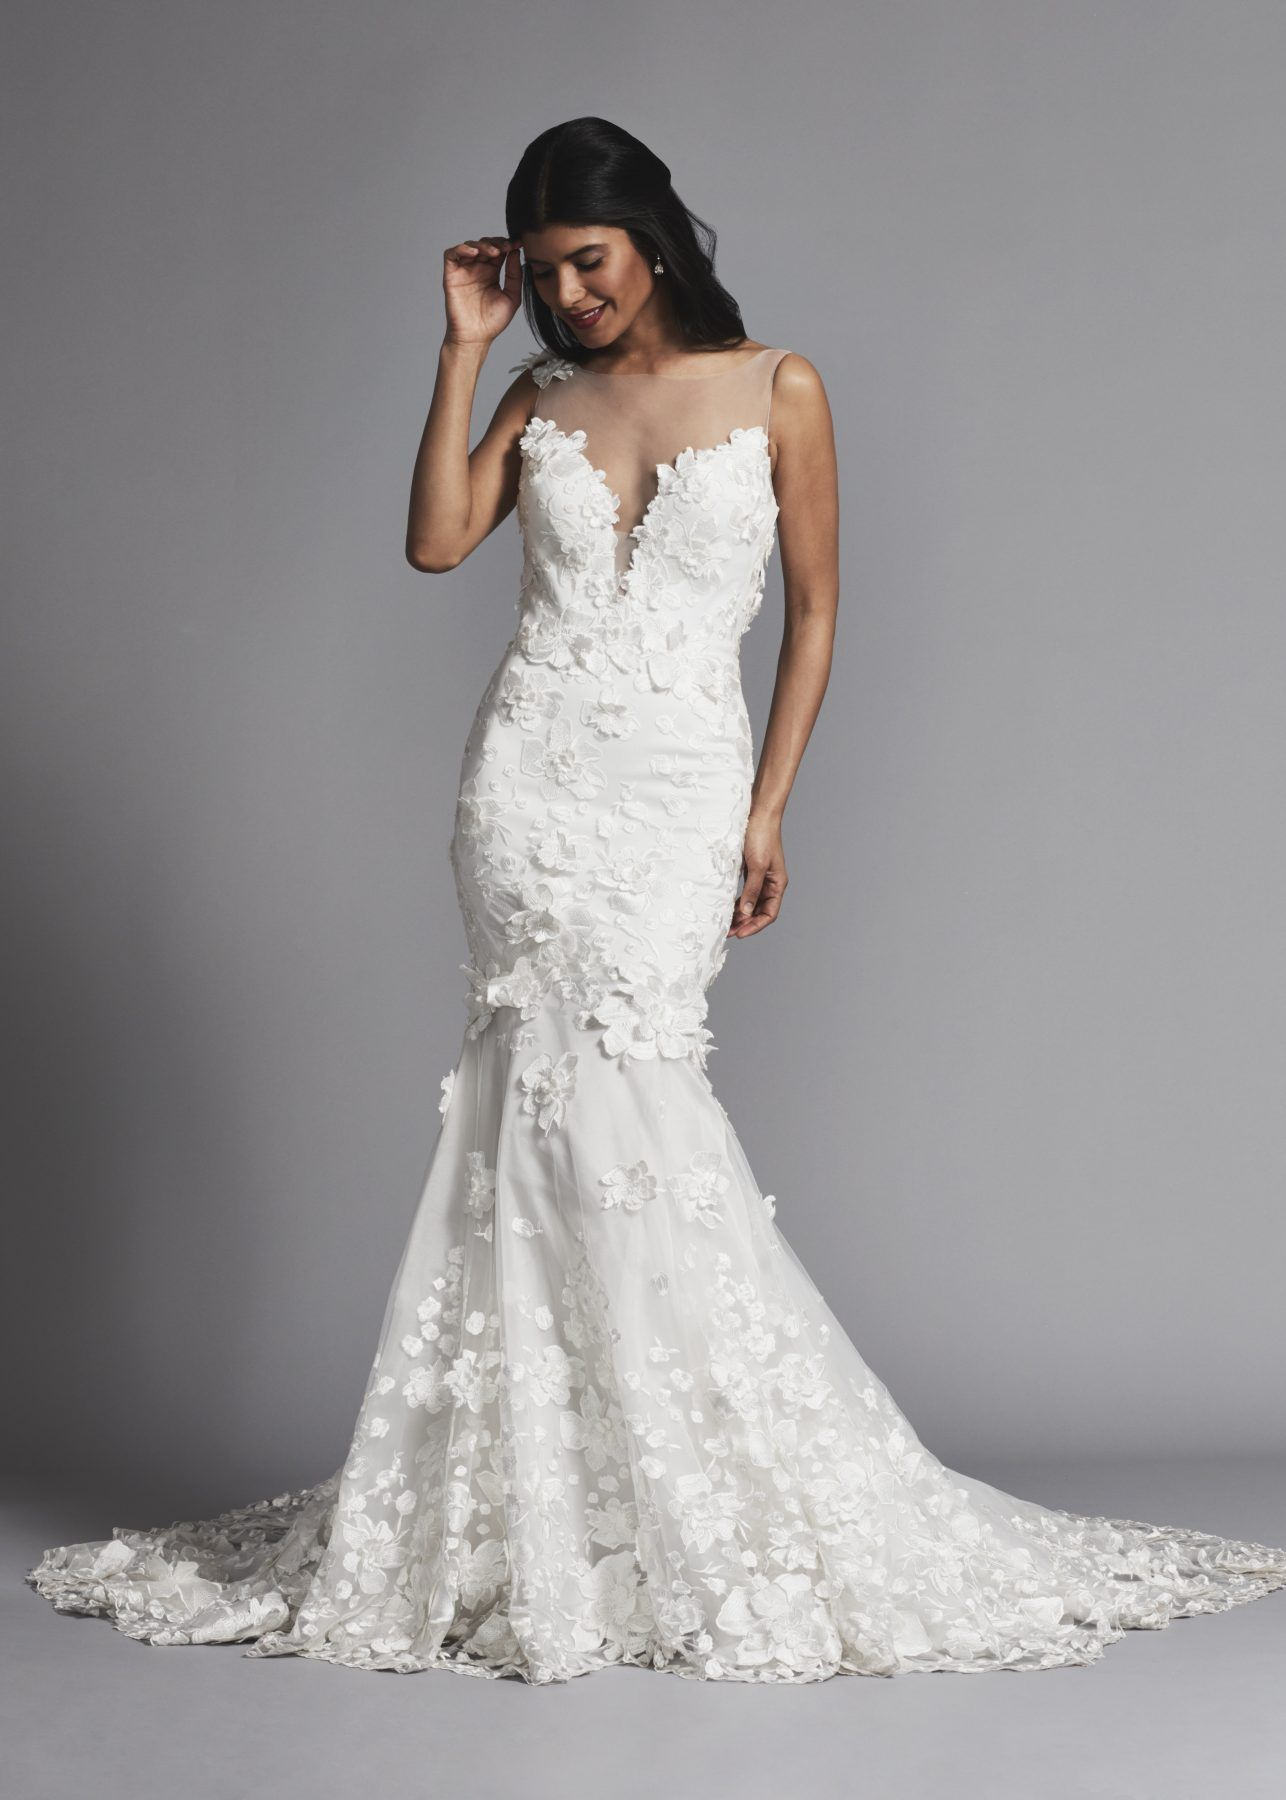 19+ Fit and flare wedding dress ideas